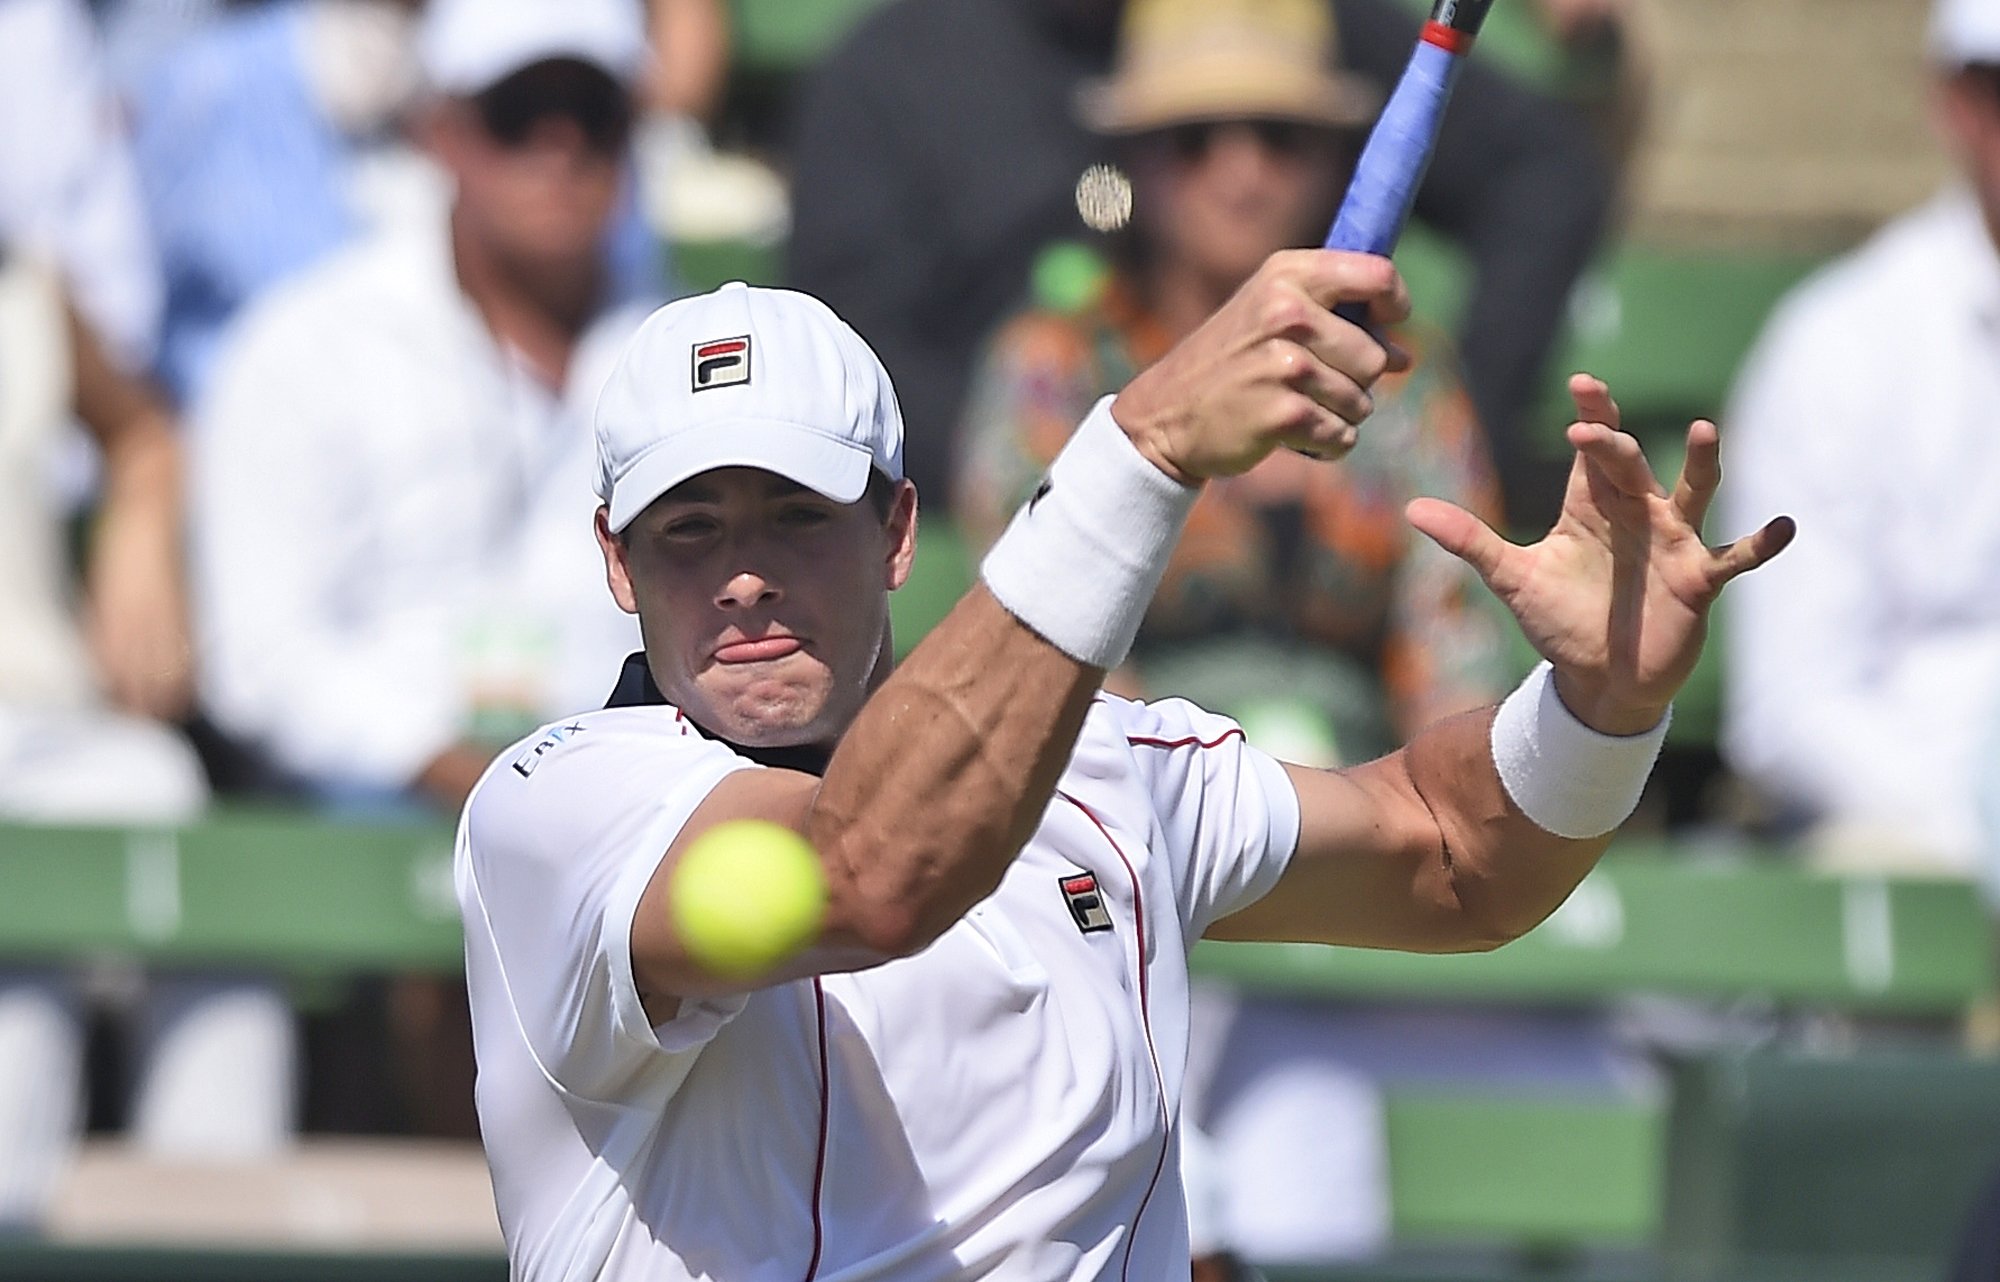 John Isner of the United States plays a forehand shot to Australia's Bernard Tomic during their Davis Cup singles match in Melbourne, Australia, Sunday, March 6, 2016. (AP Photo/Andrew Brownbill)